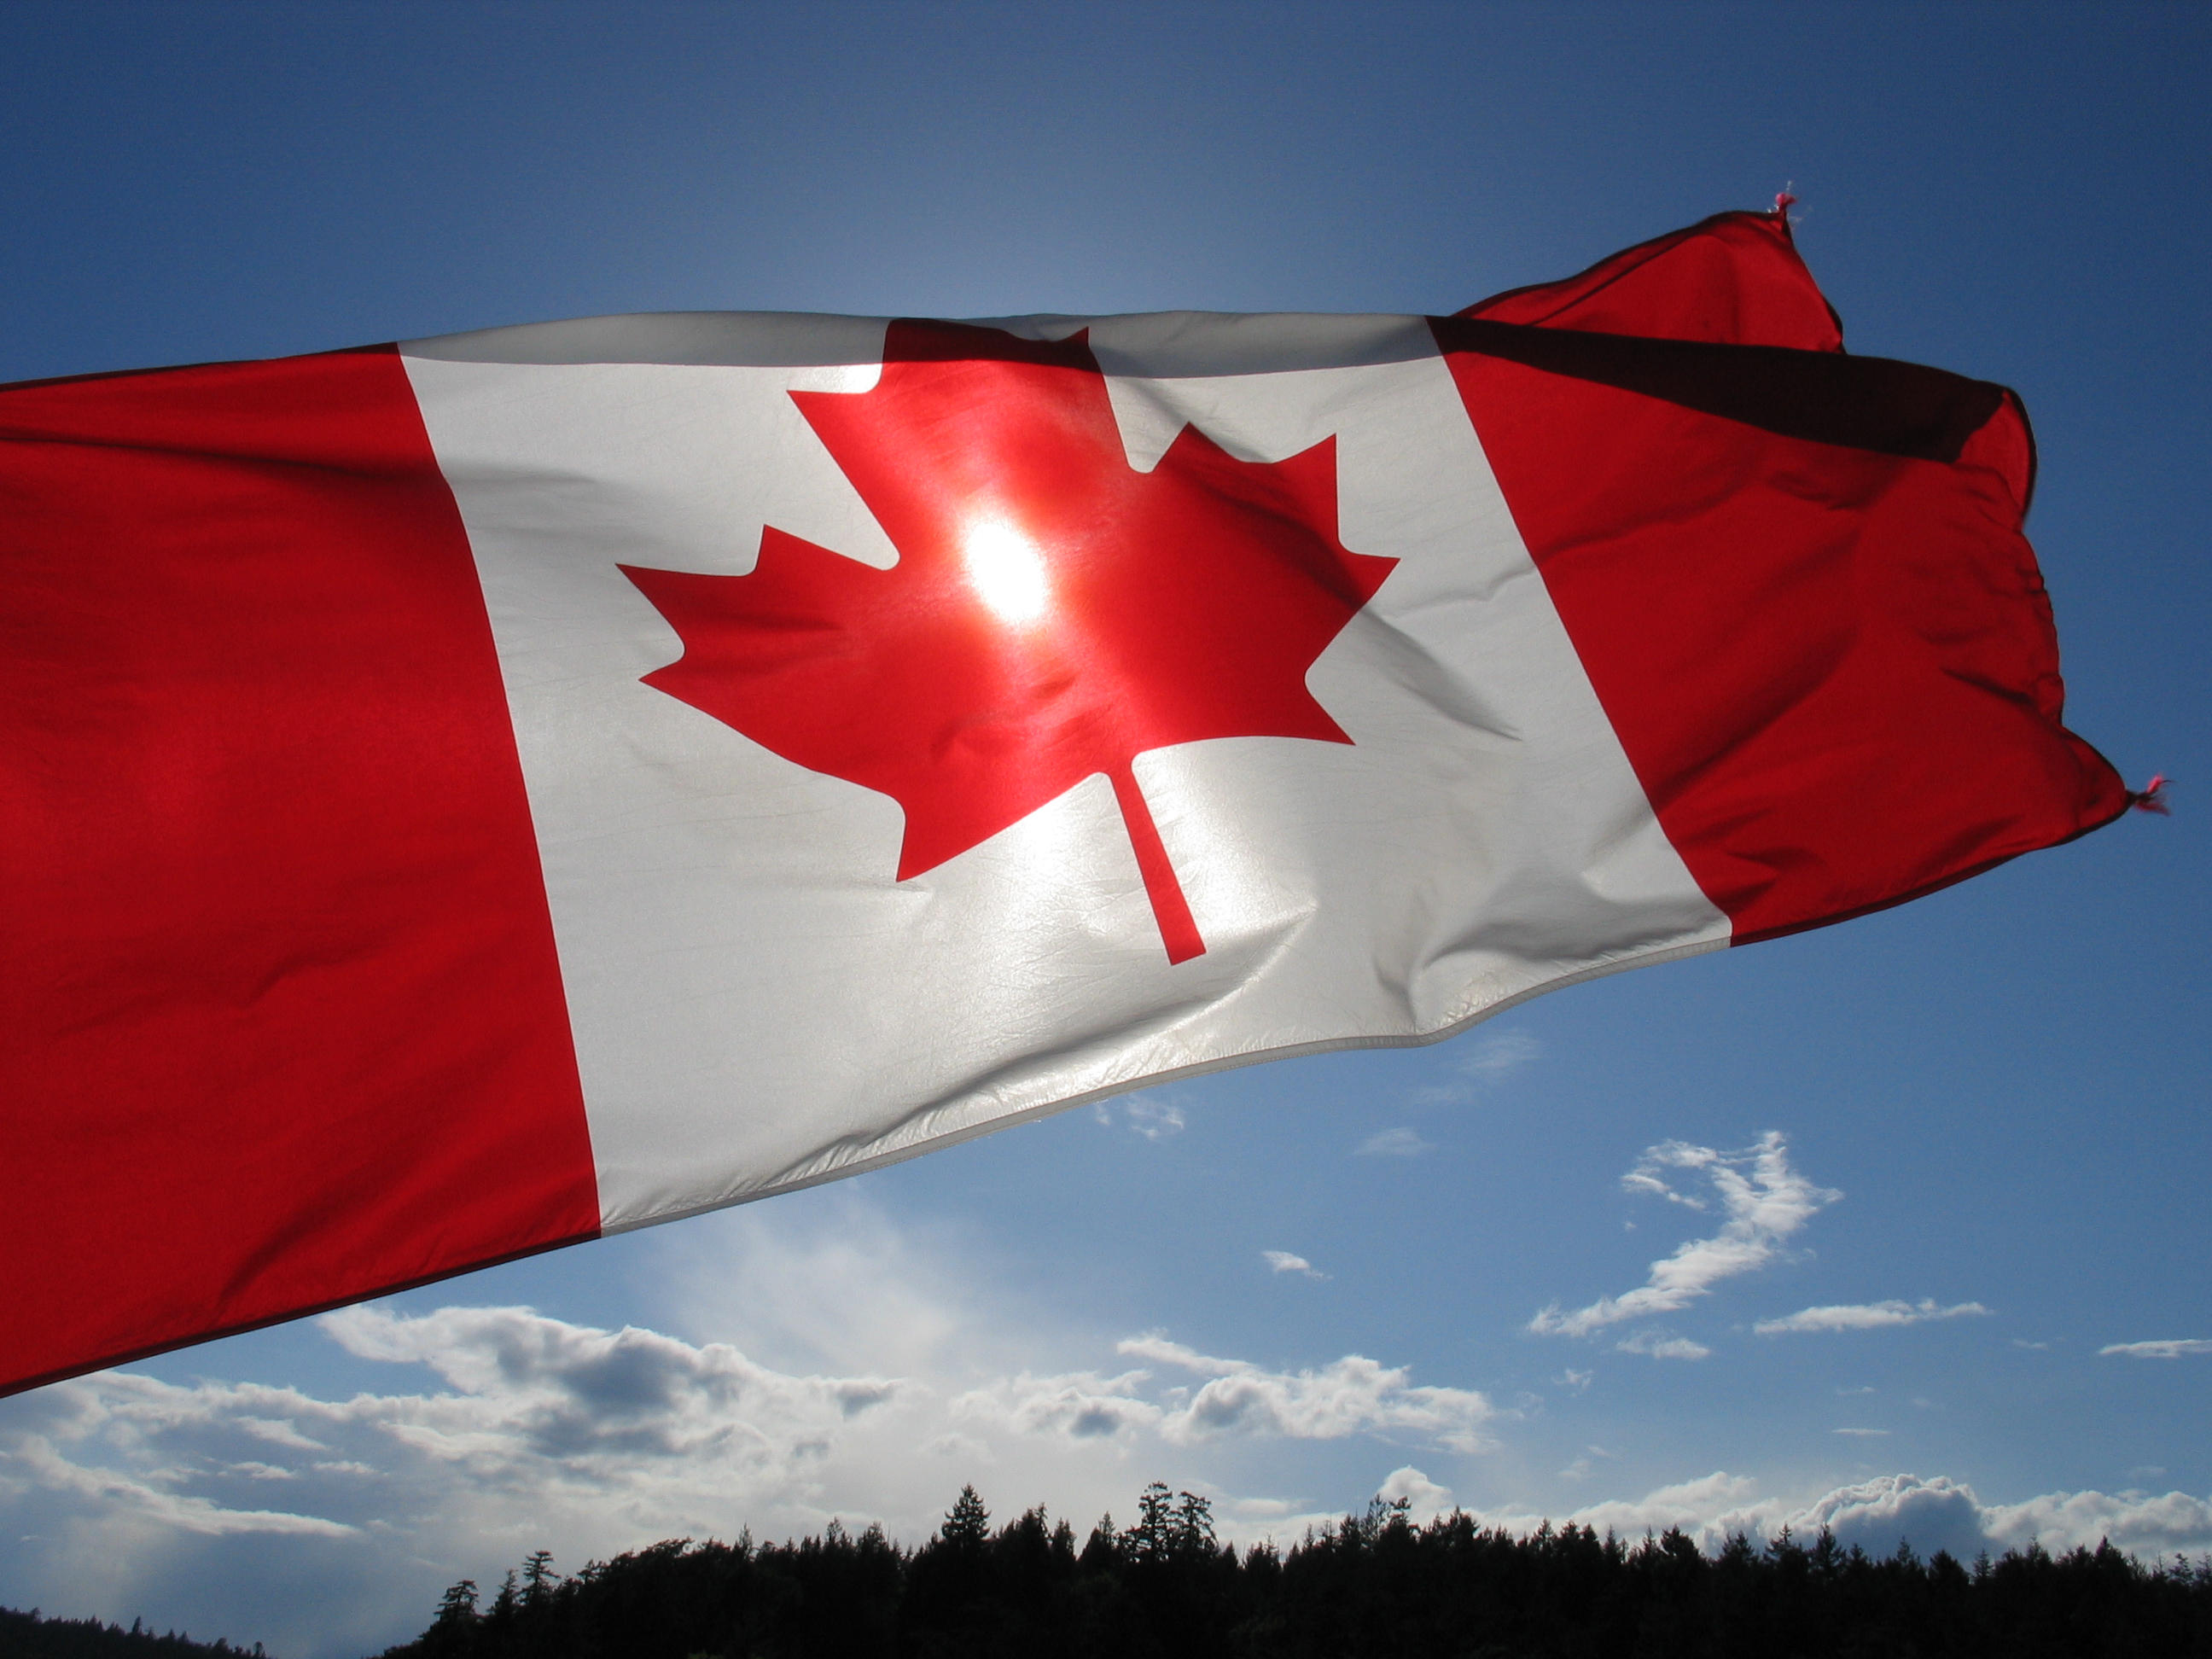 Canadian flag by aesoph on DeviantArt